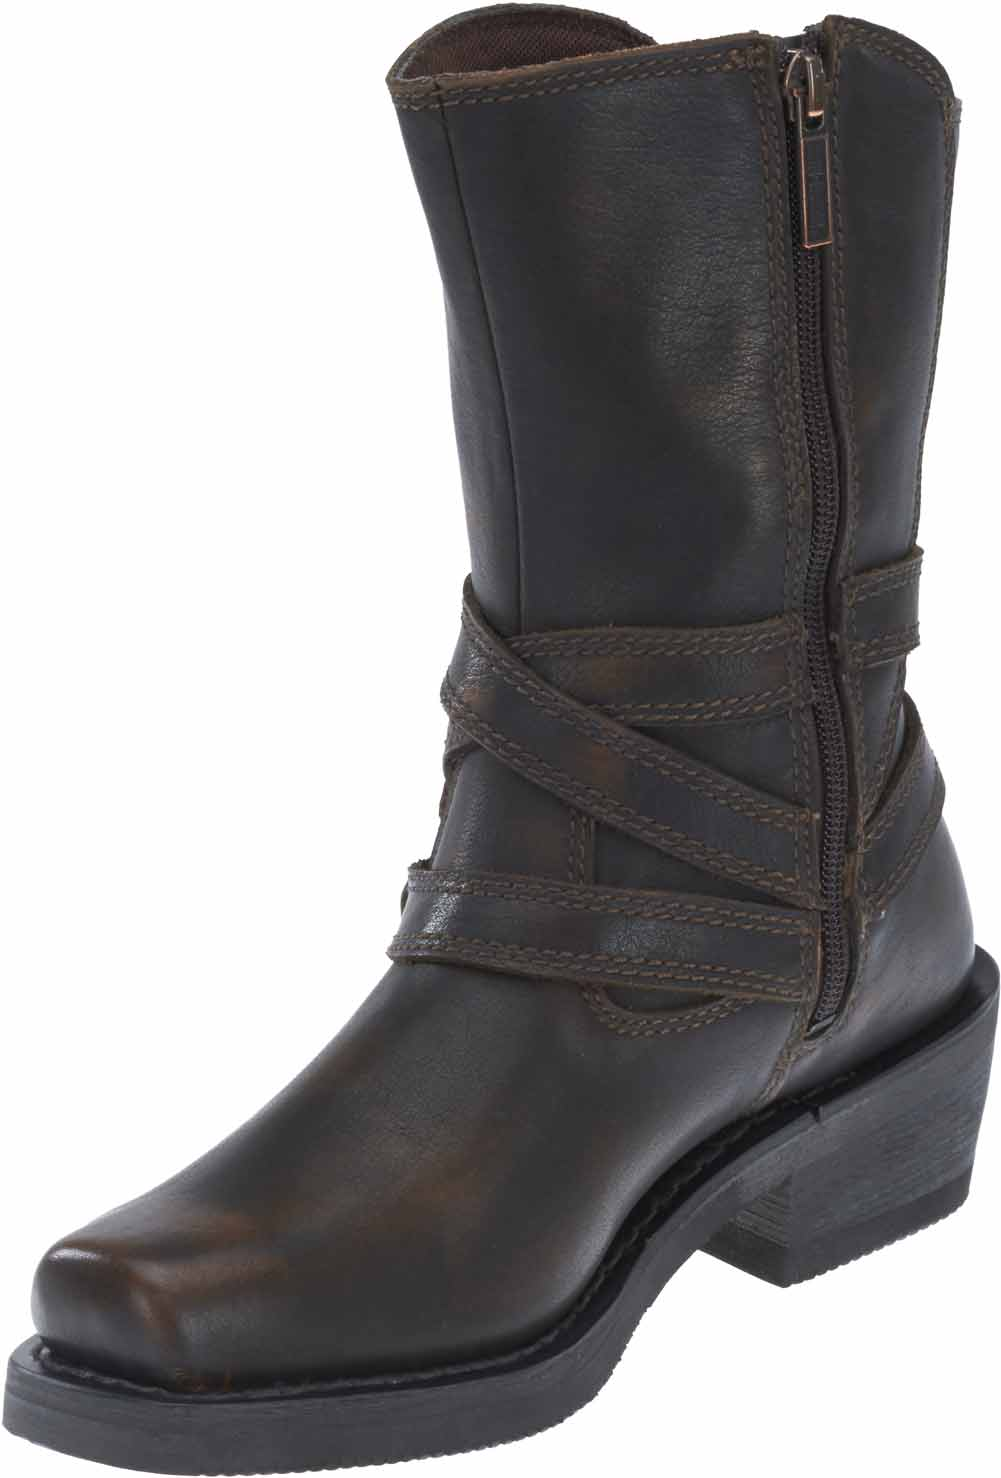 Black or Brown D87091 Harley-Davidson Womens Ingleside 8.5 Motorcycle Boots